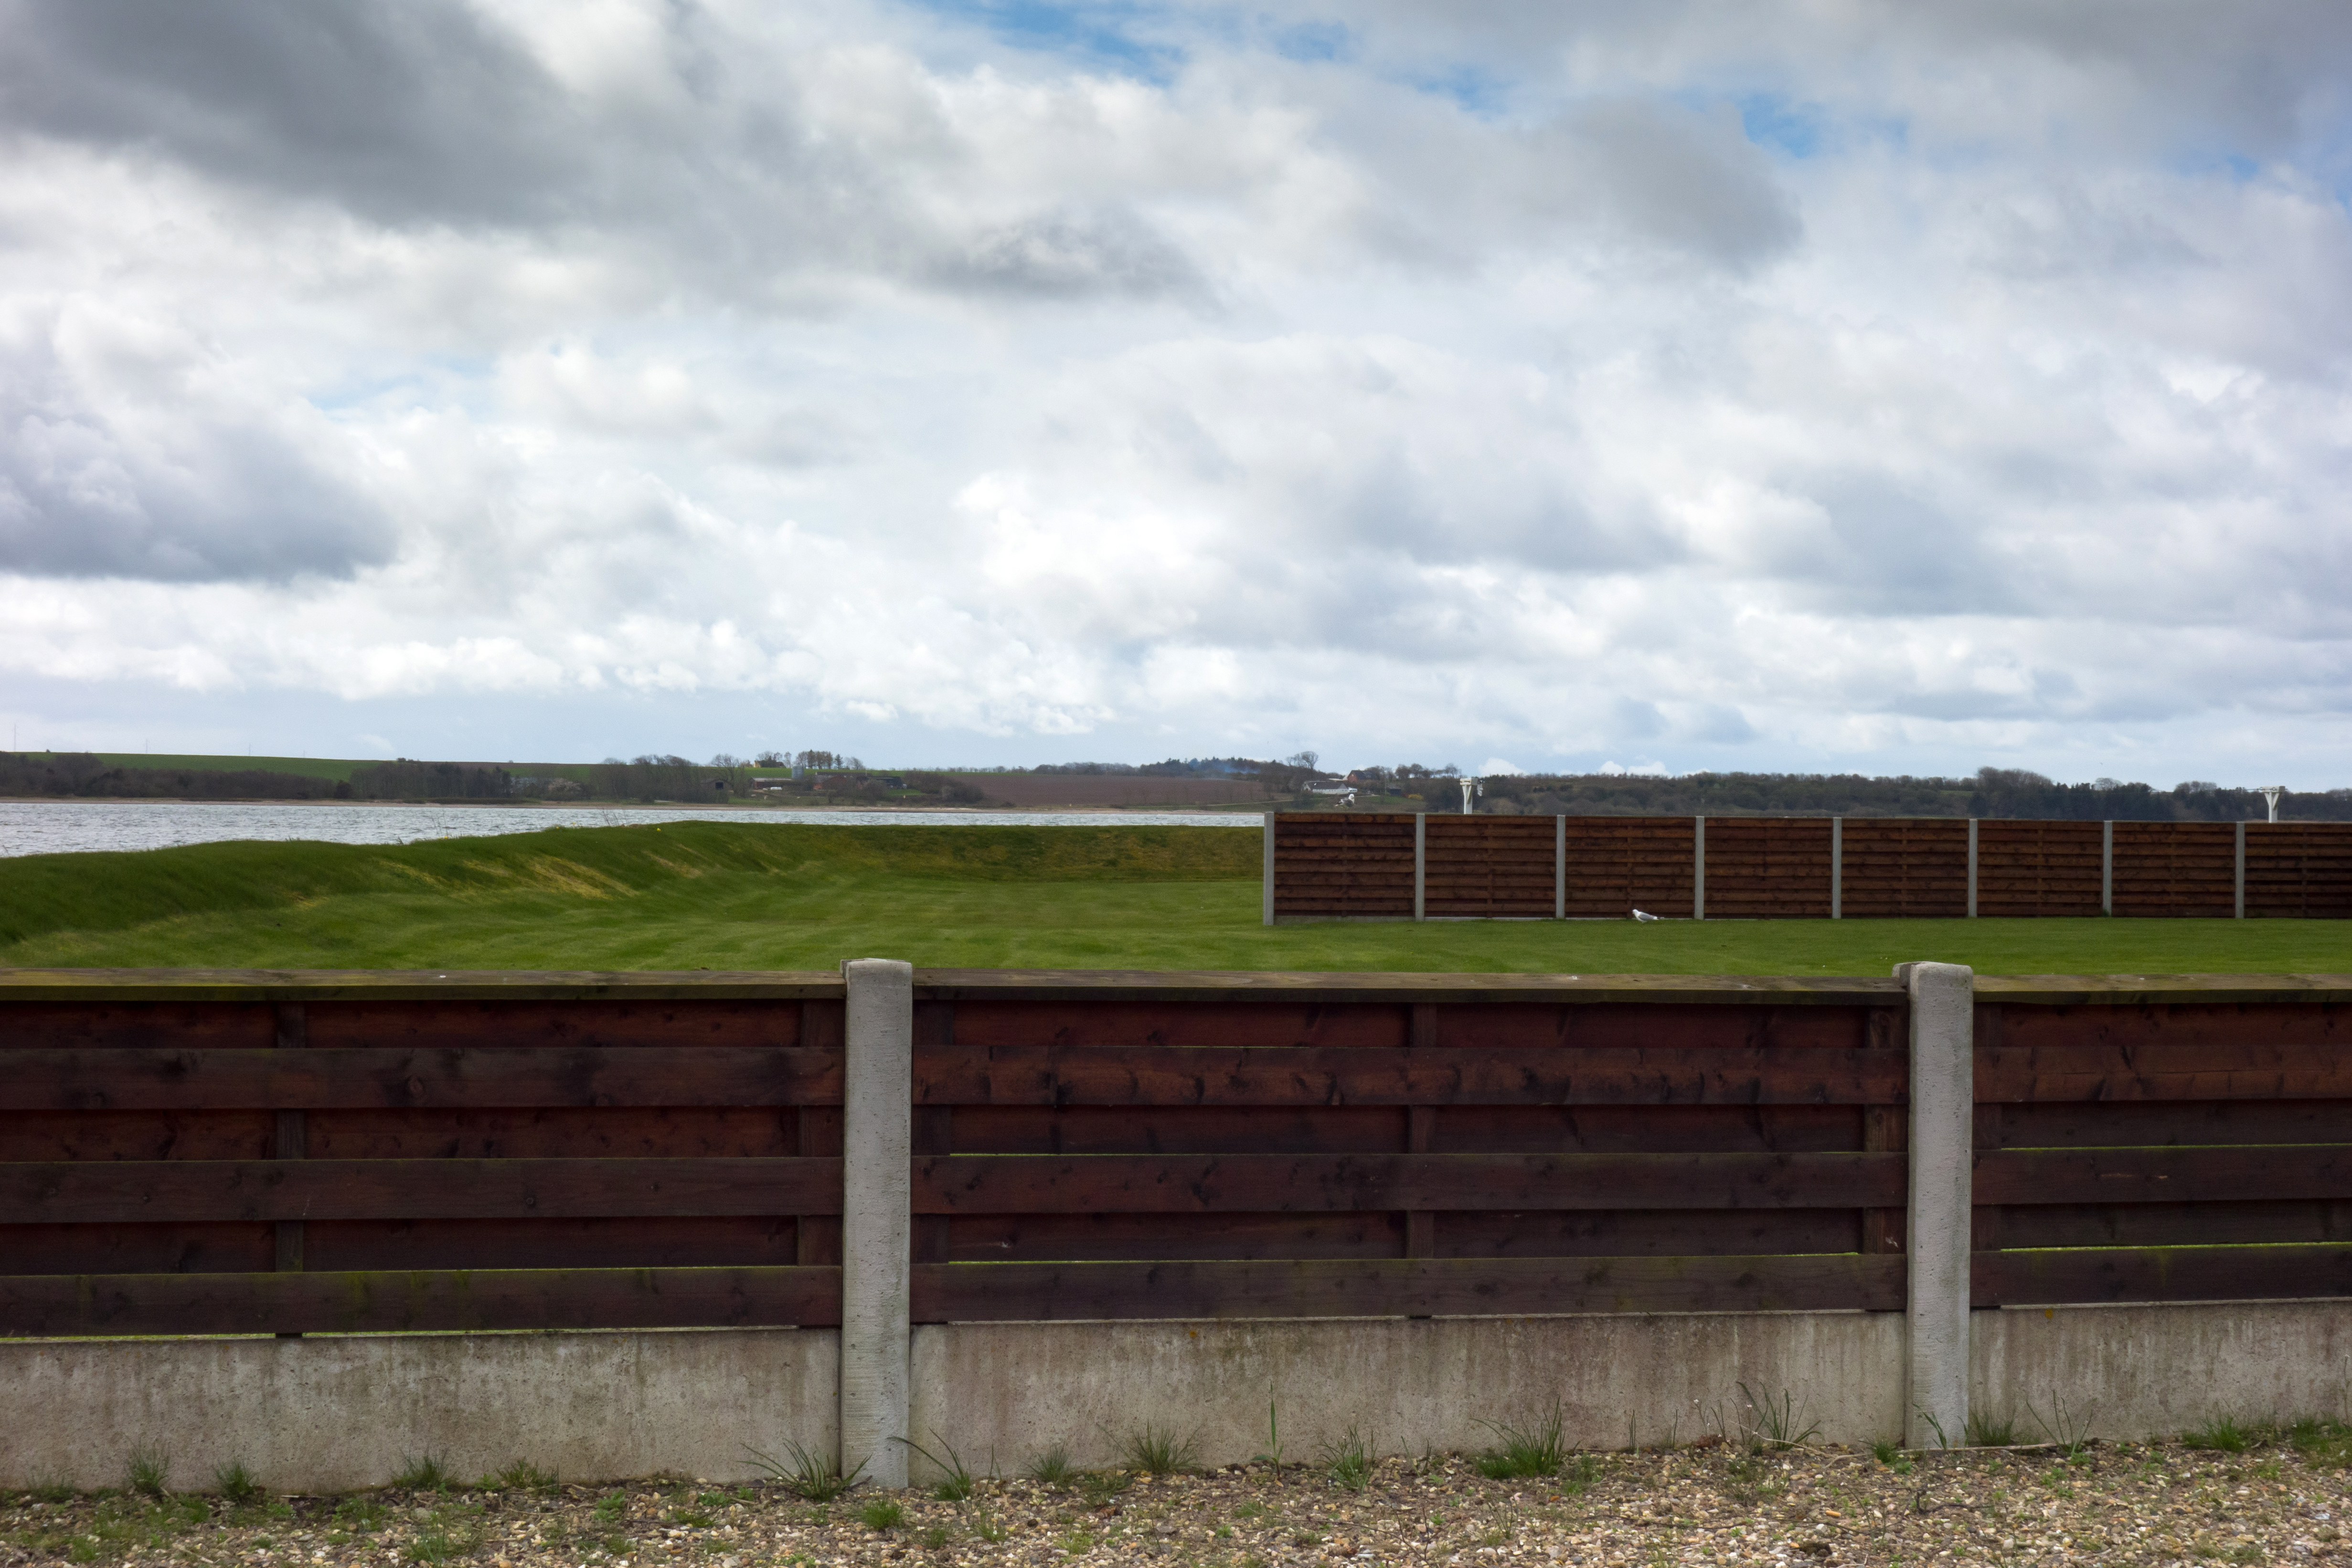 Fence in Branden on the way to Fur, Clouds, Denmark, Fence, Fur, HQ Photo